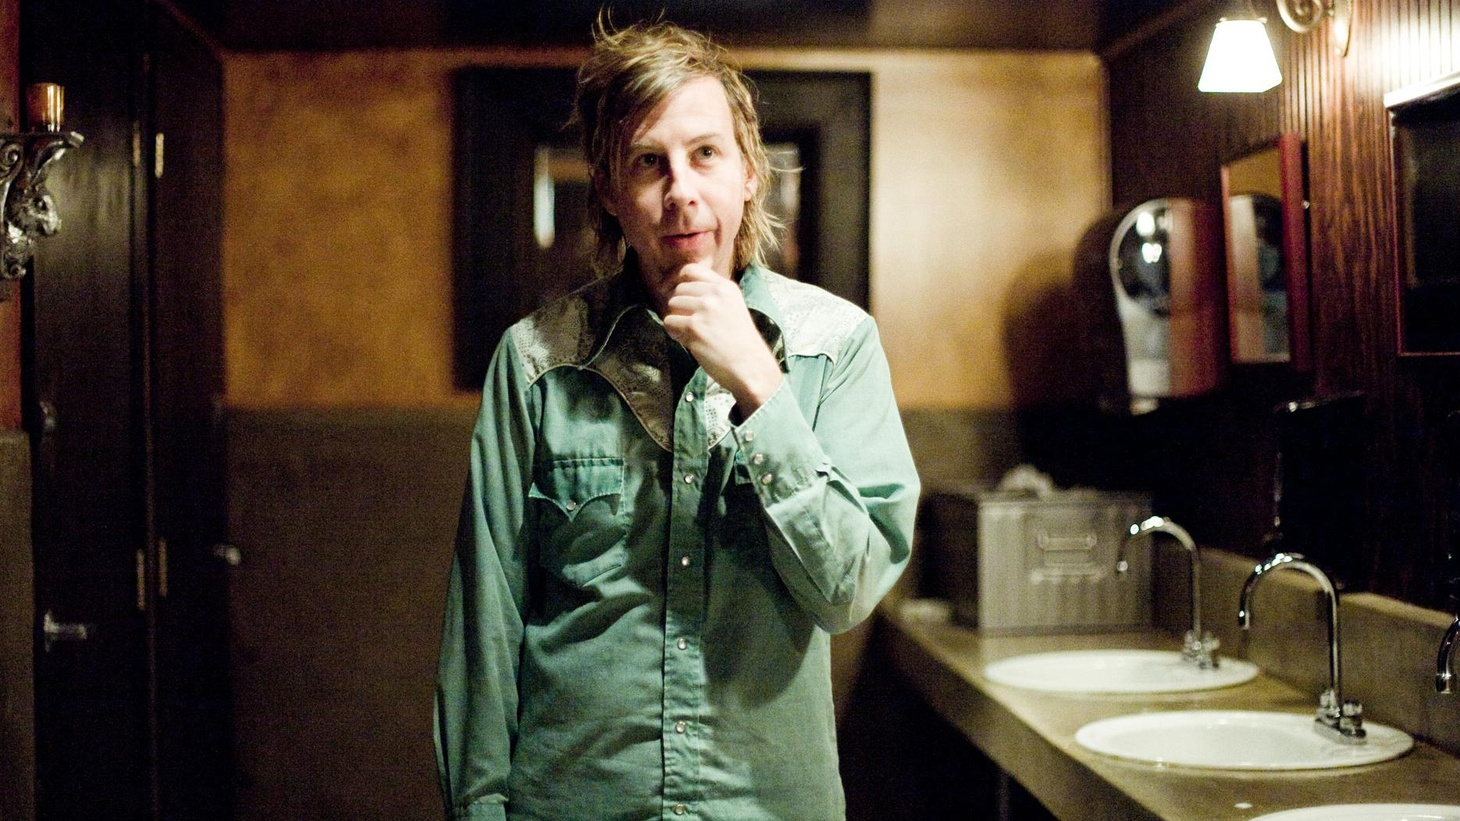 ...from Romanian Names.   Musician John Vanderslice has garnered critical acclaim for his melodic style and the audio quality of his recordings...